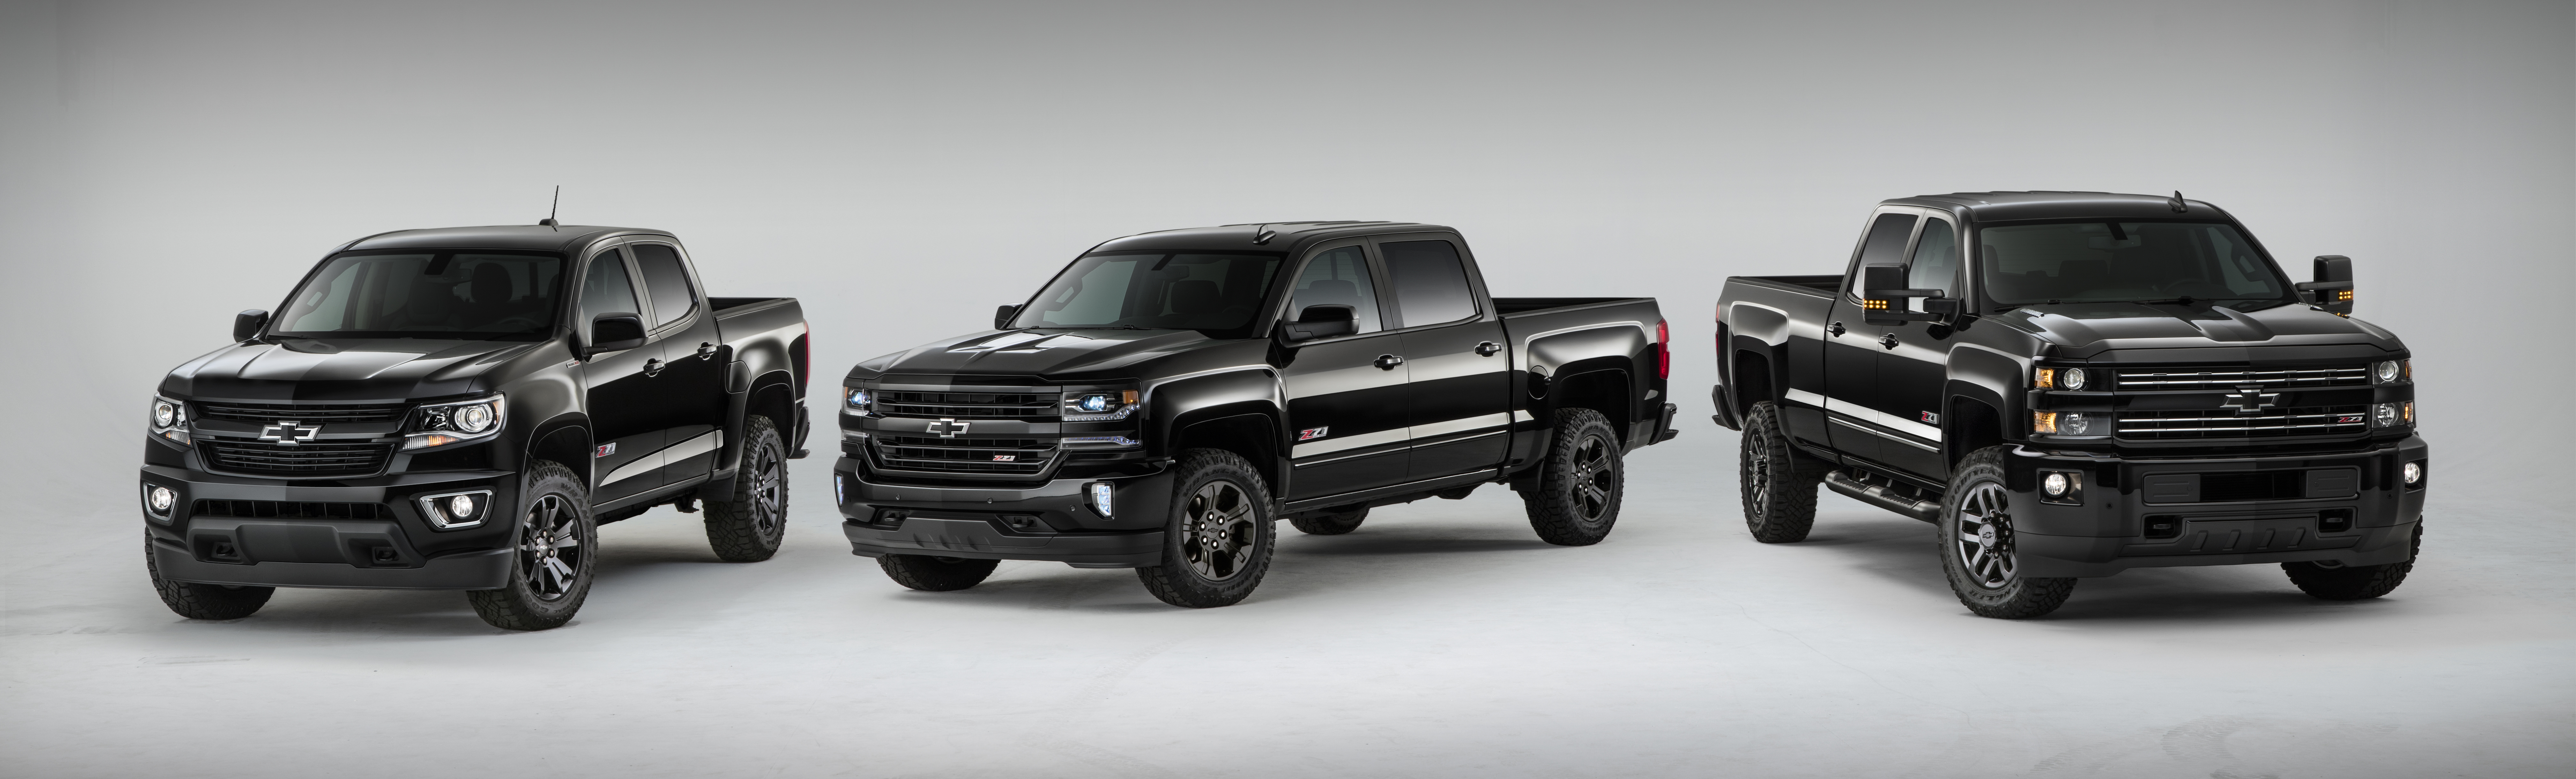 truck chevrolet saw silverado commercial youtube watch